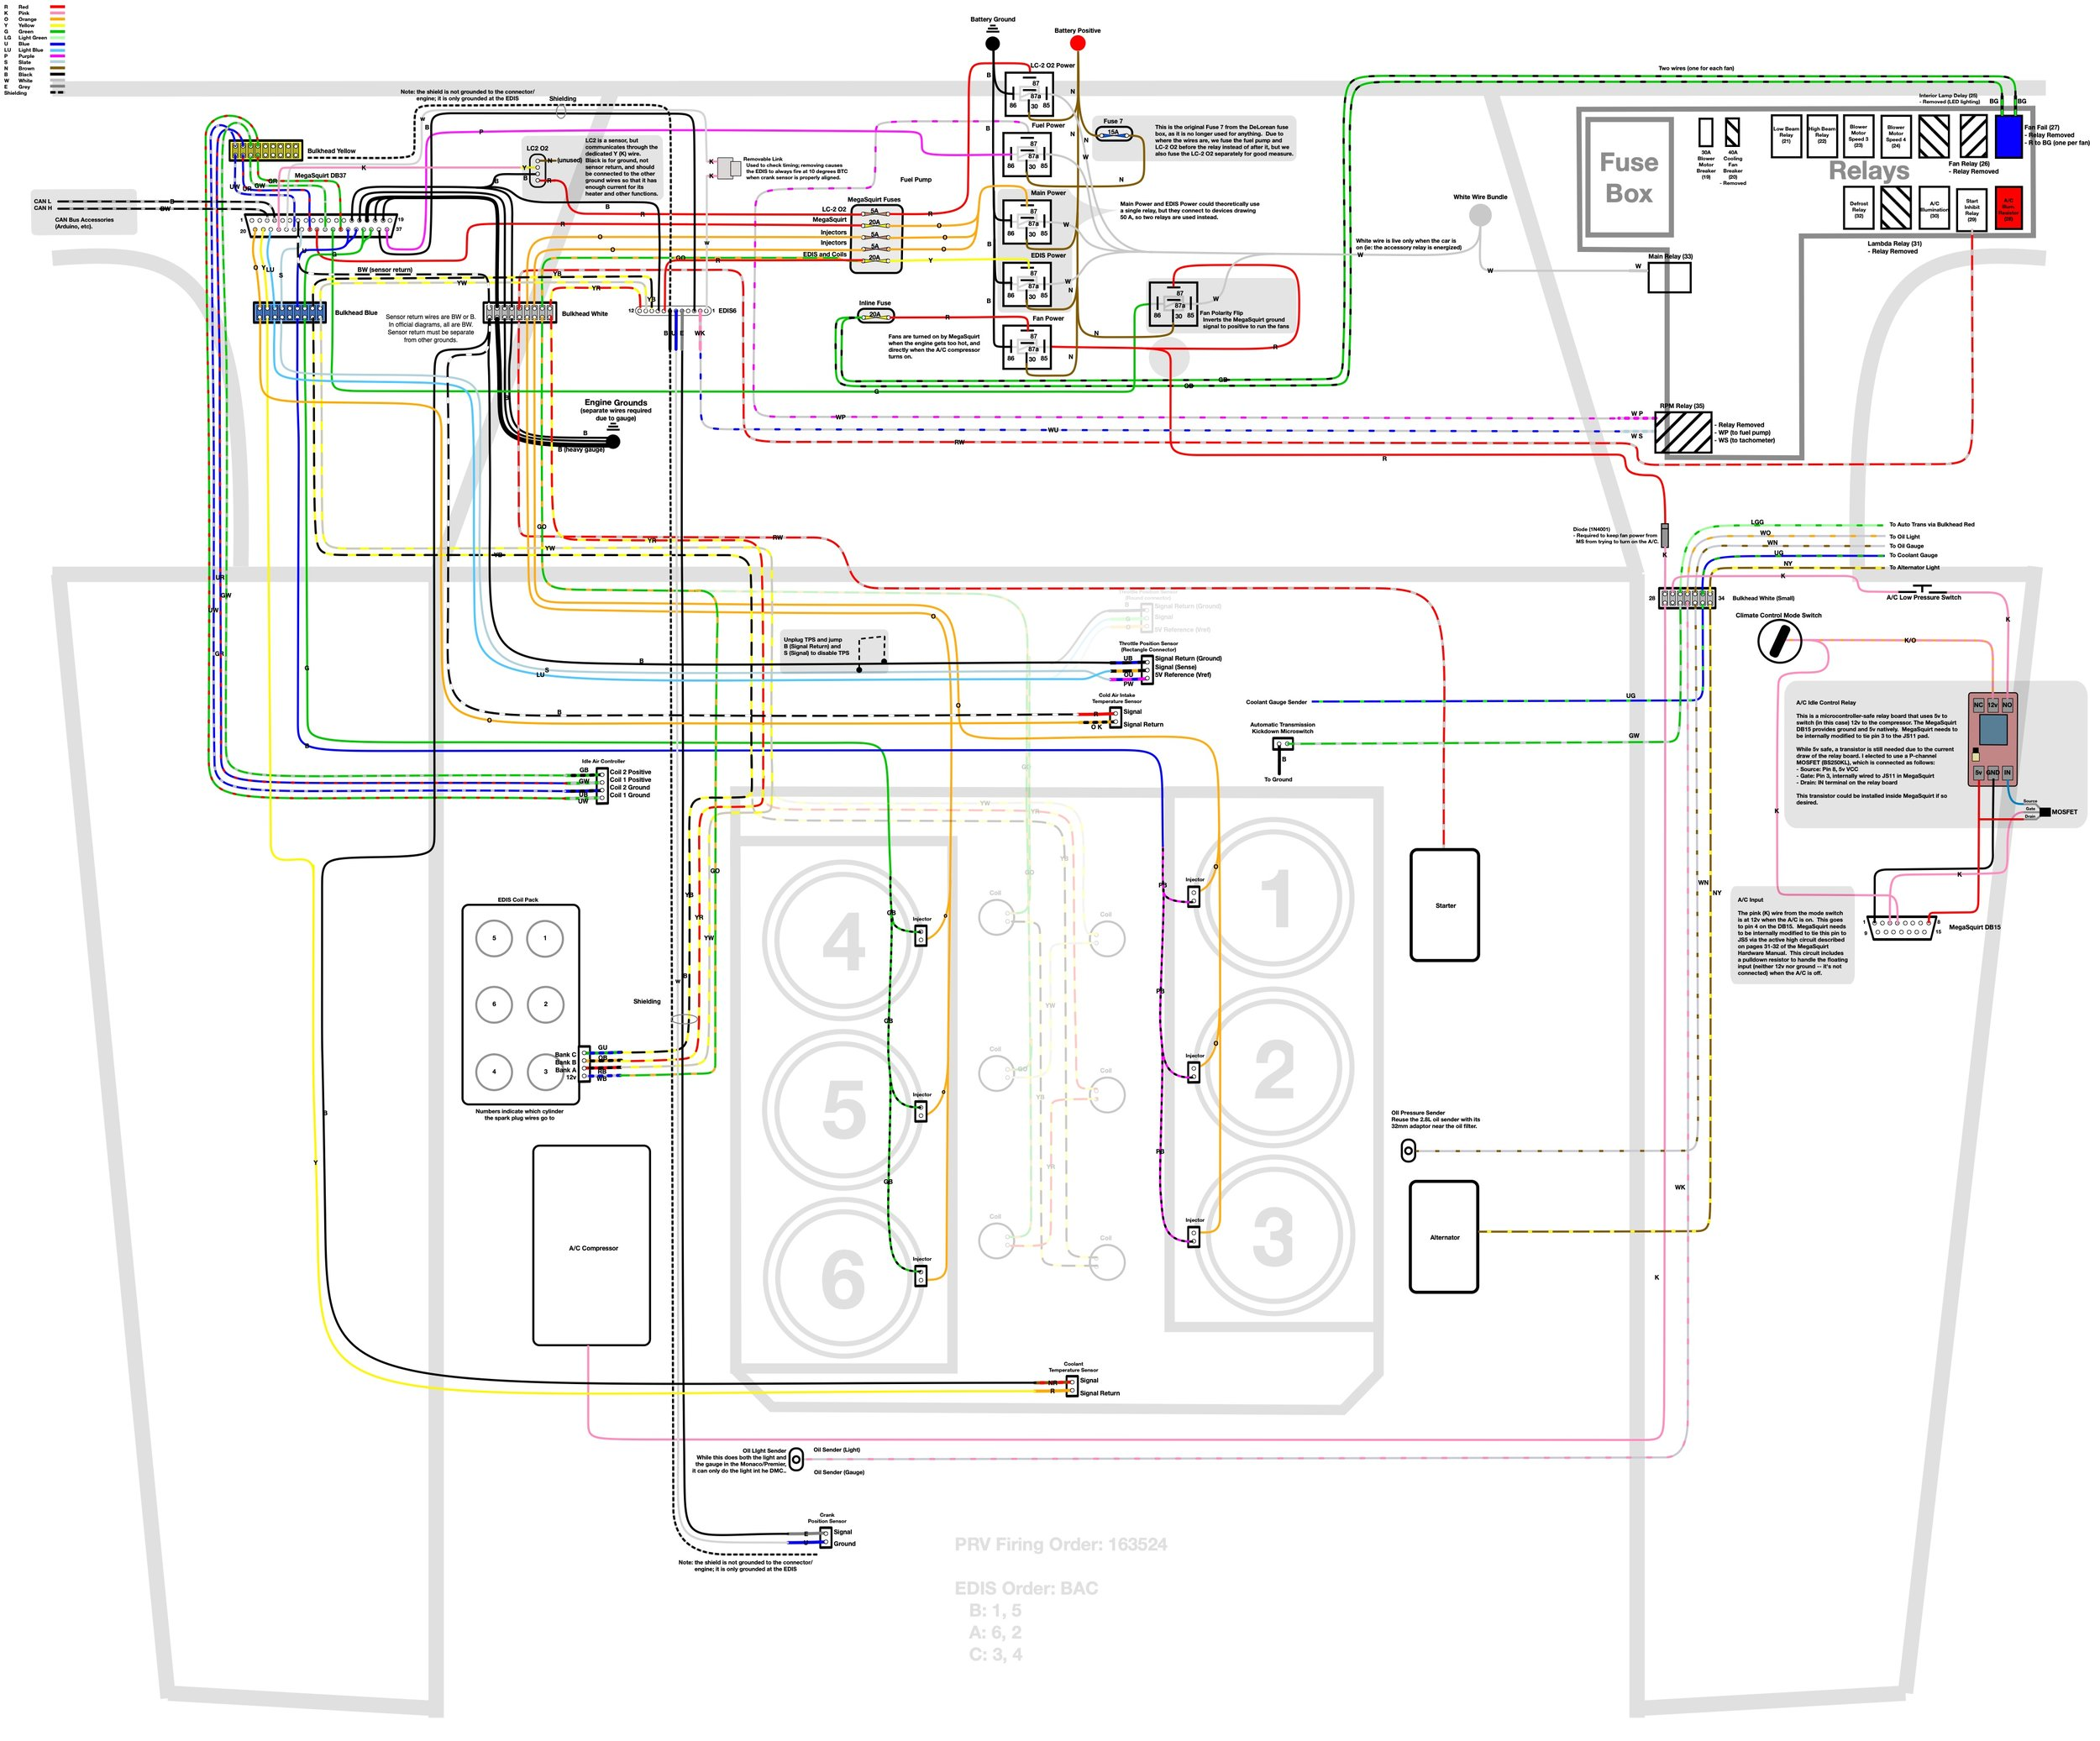 DeLorean+EFI+Wiring?format=1500w wiring, installing the new harness and fuel injector refurbishing rx8 engine wiring harness diagram at webbmarketing.co